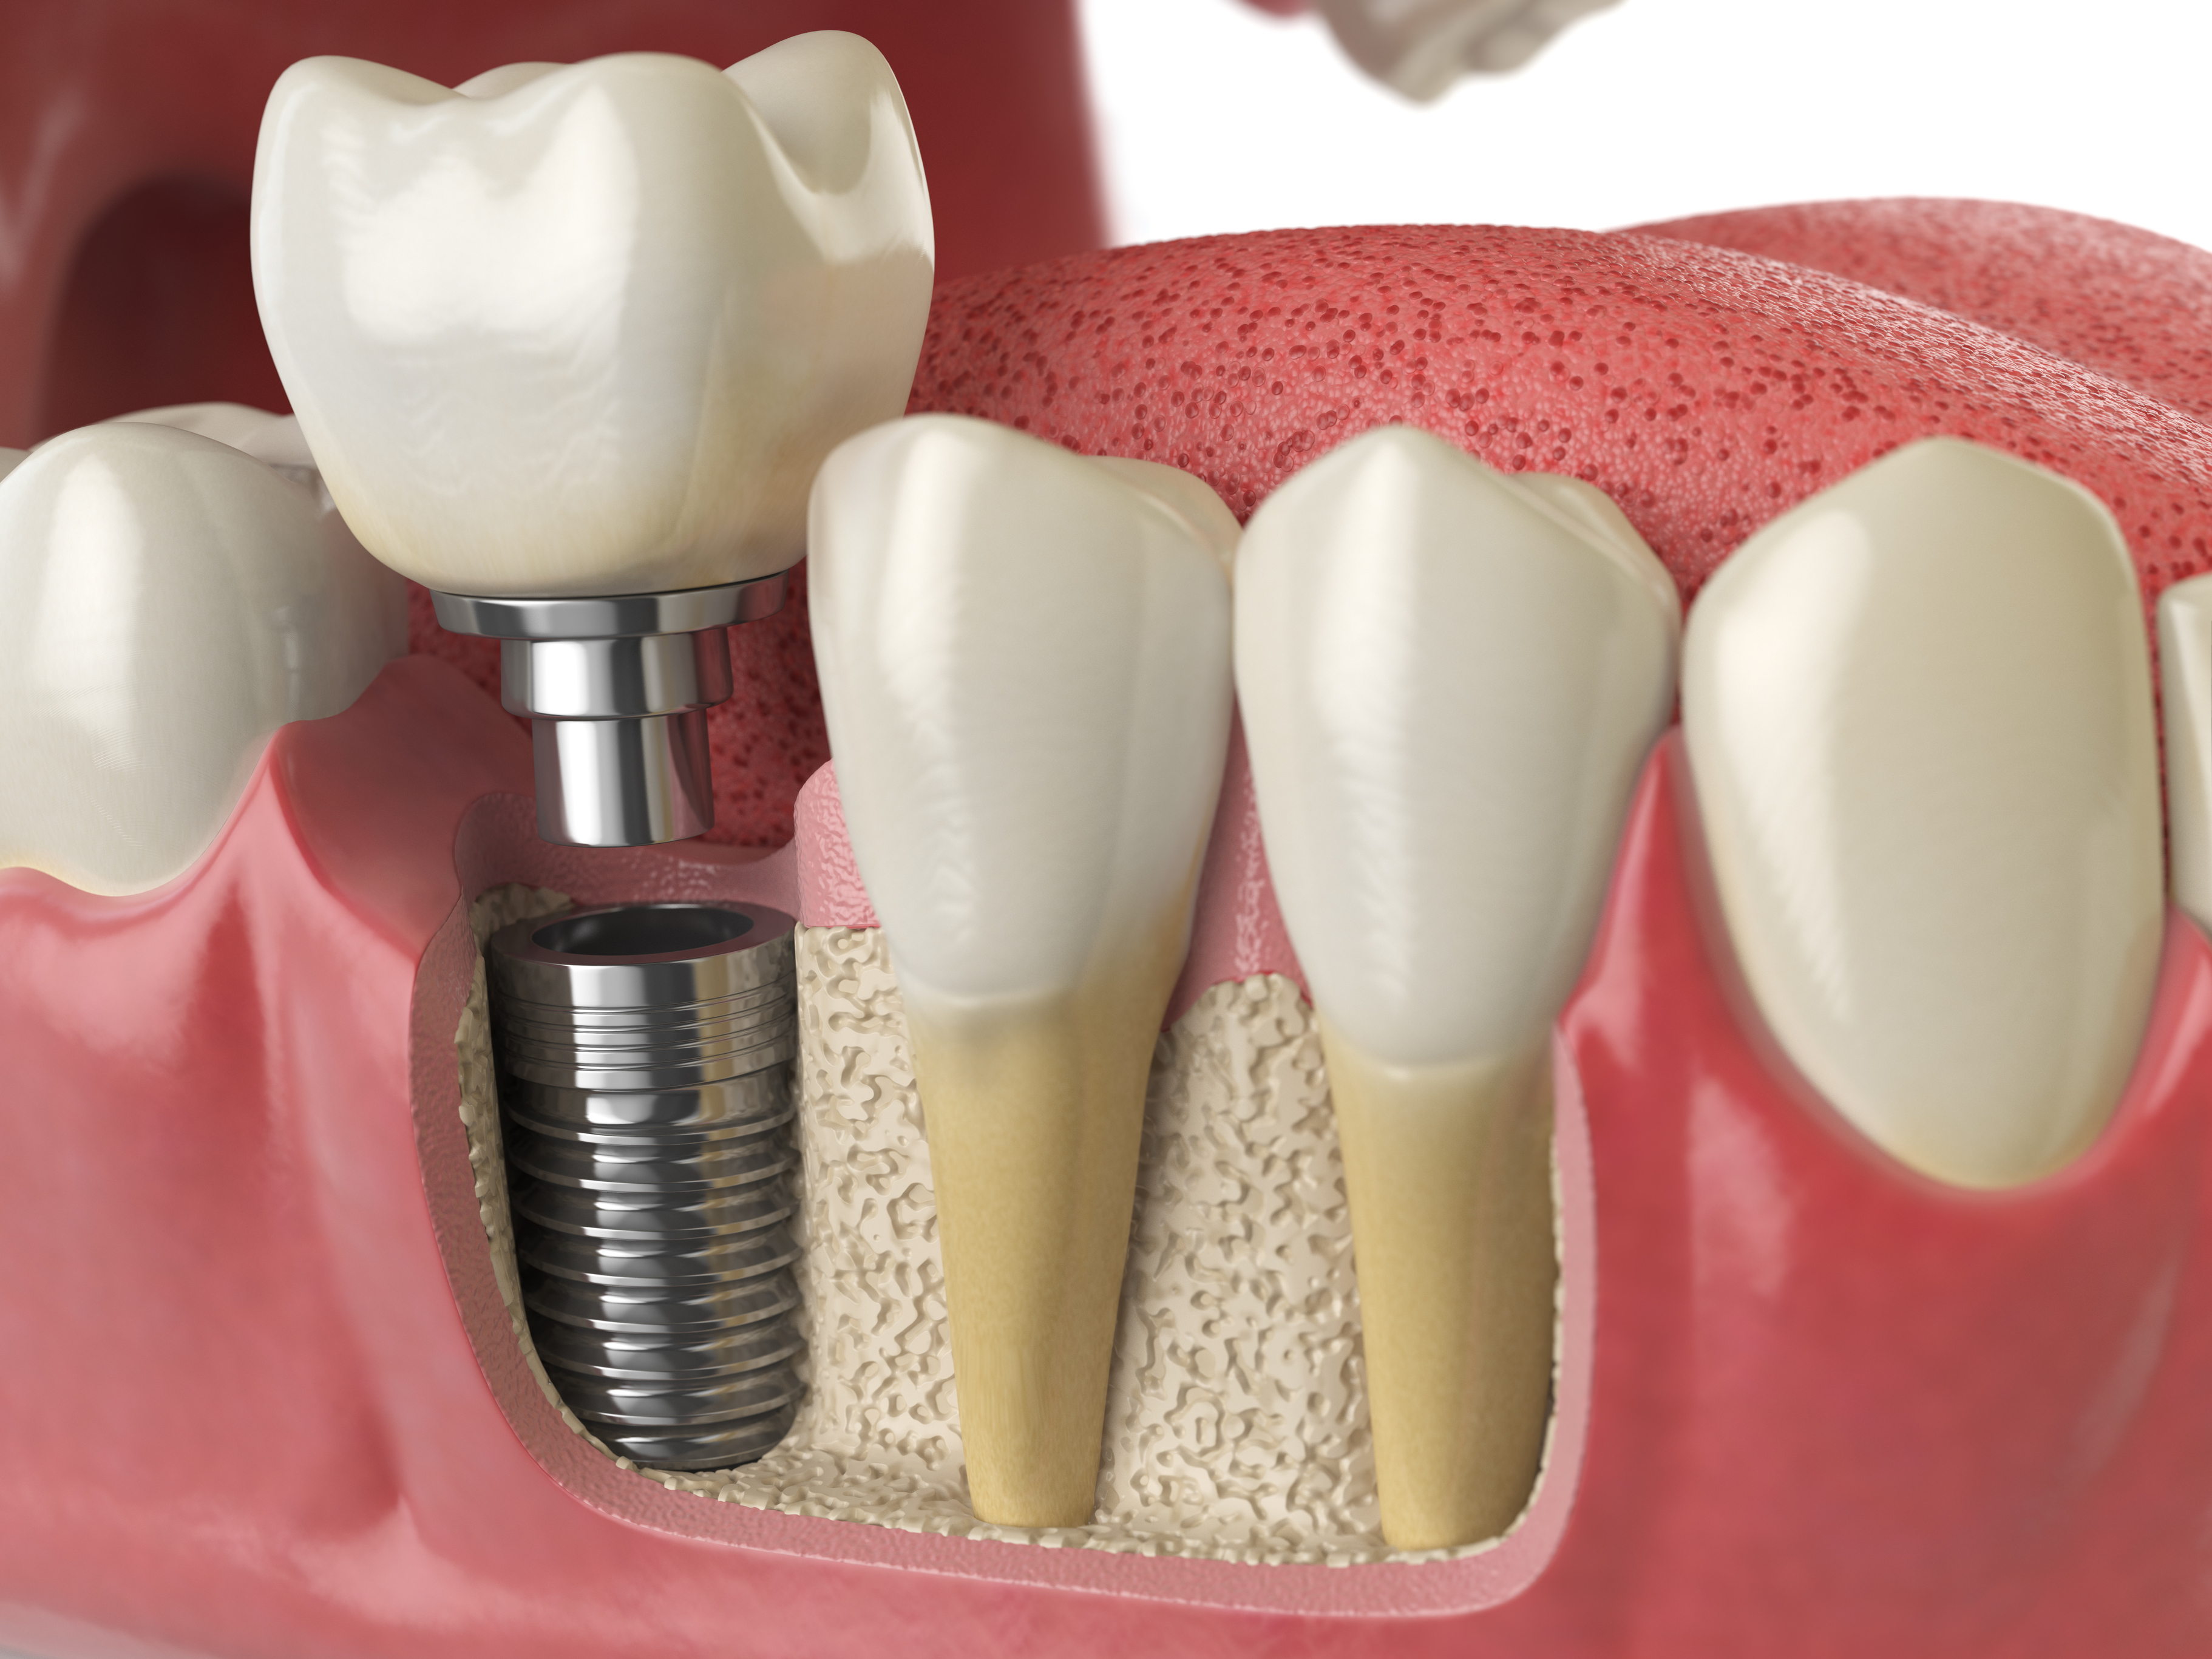 How do dental implants work with your existing teeth?